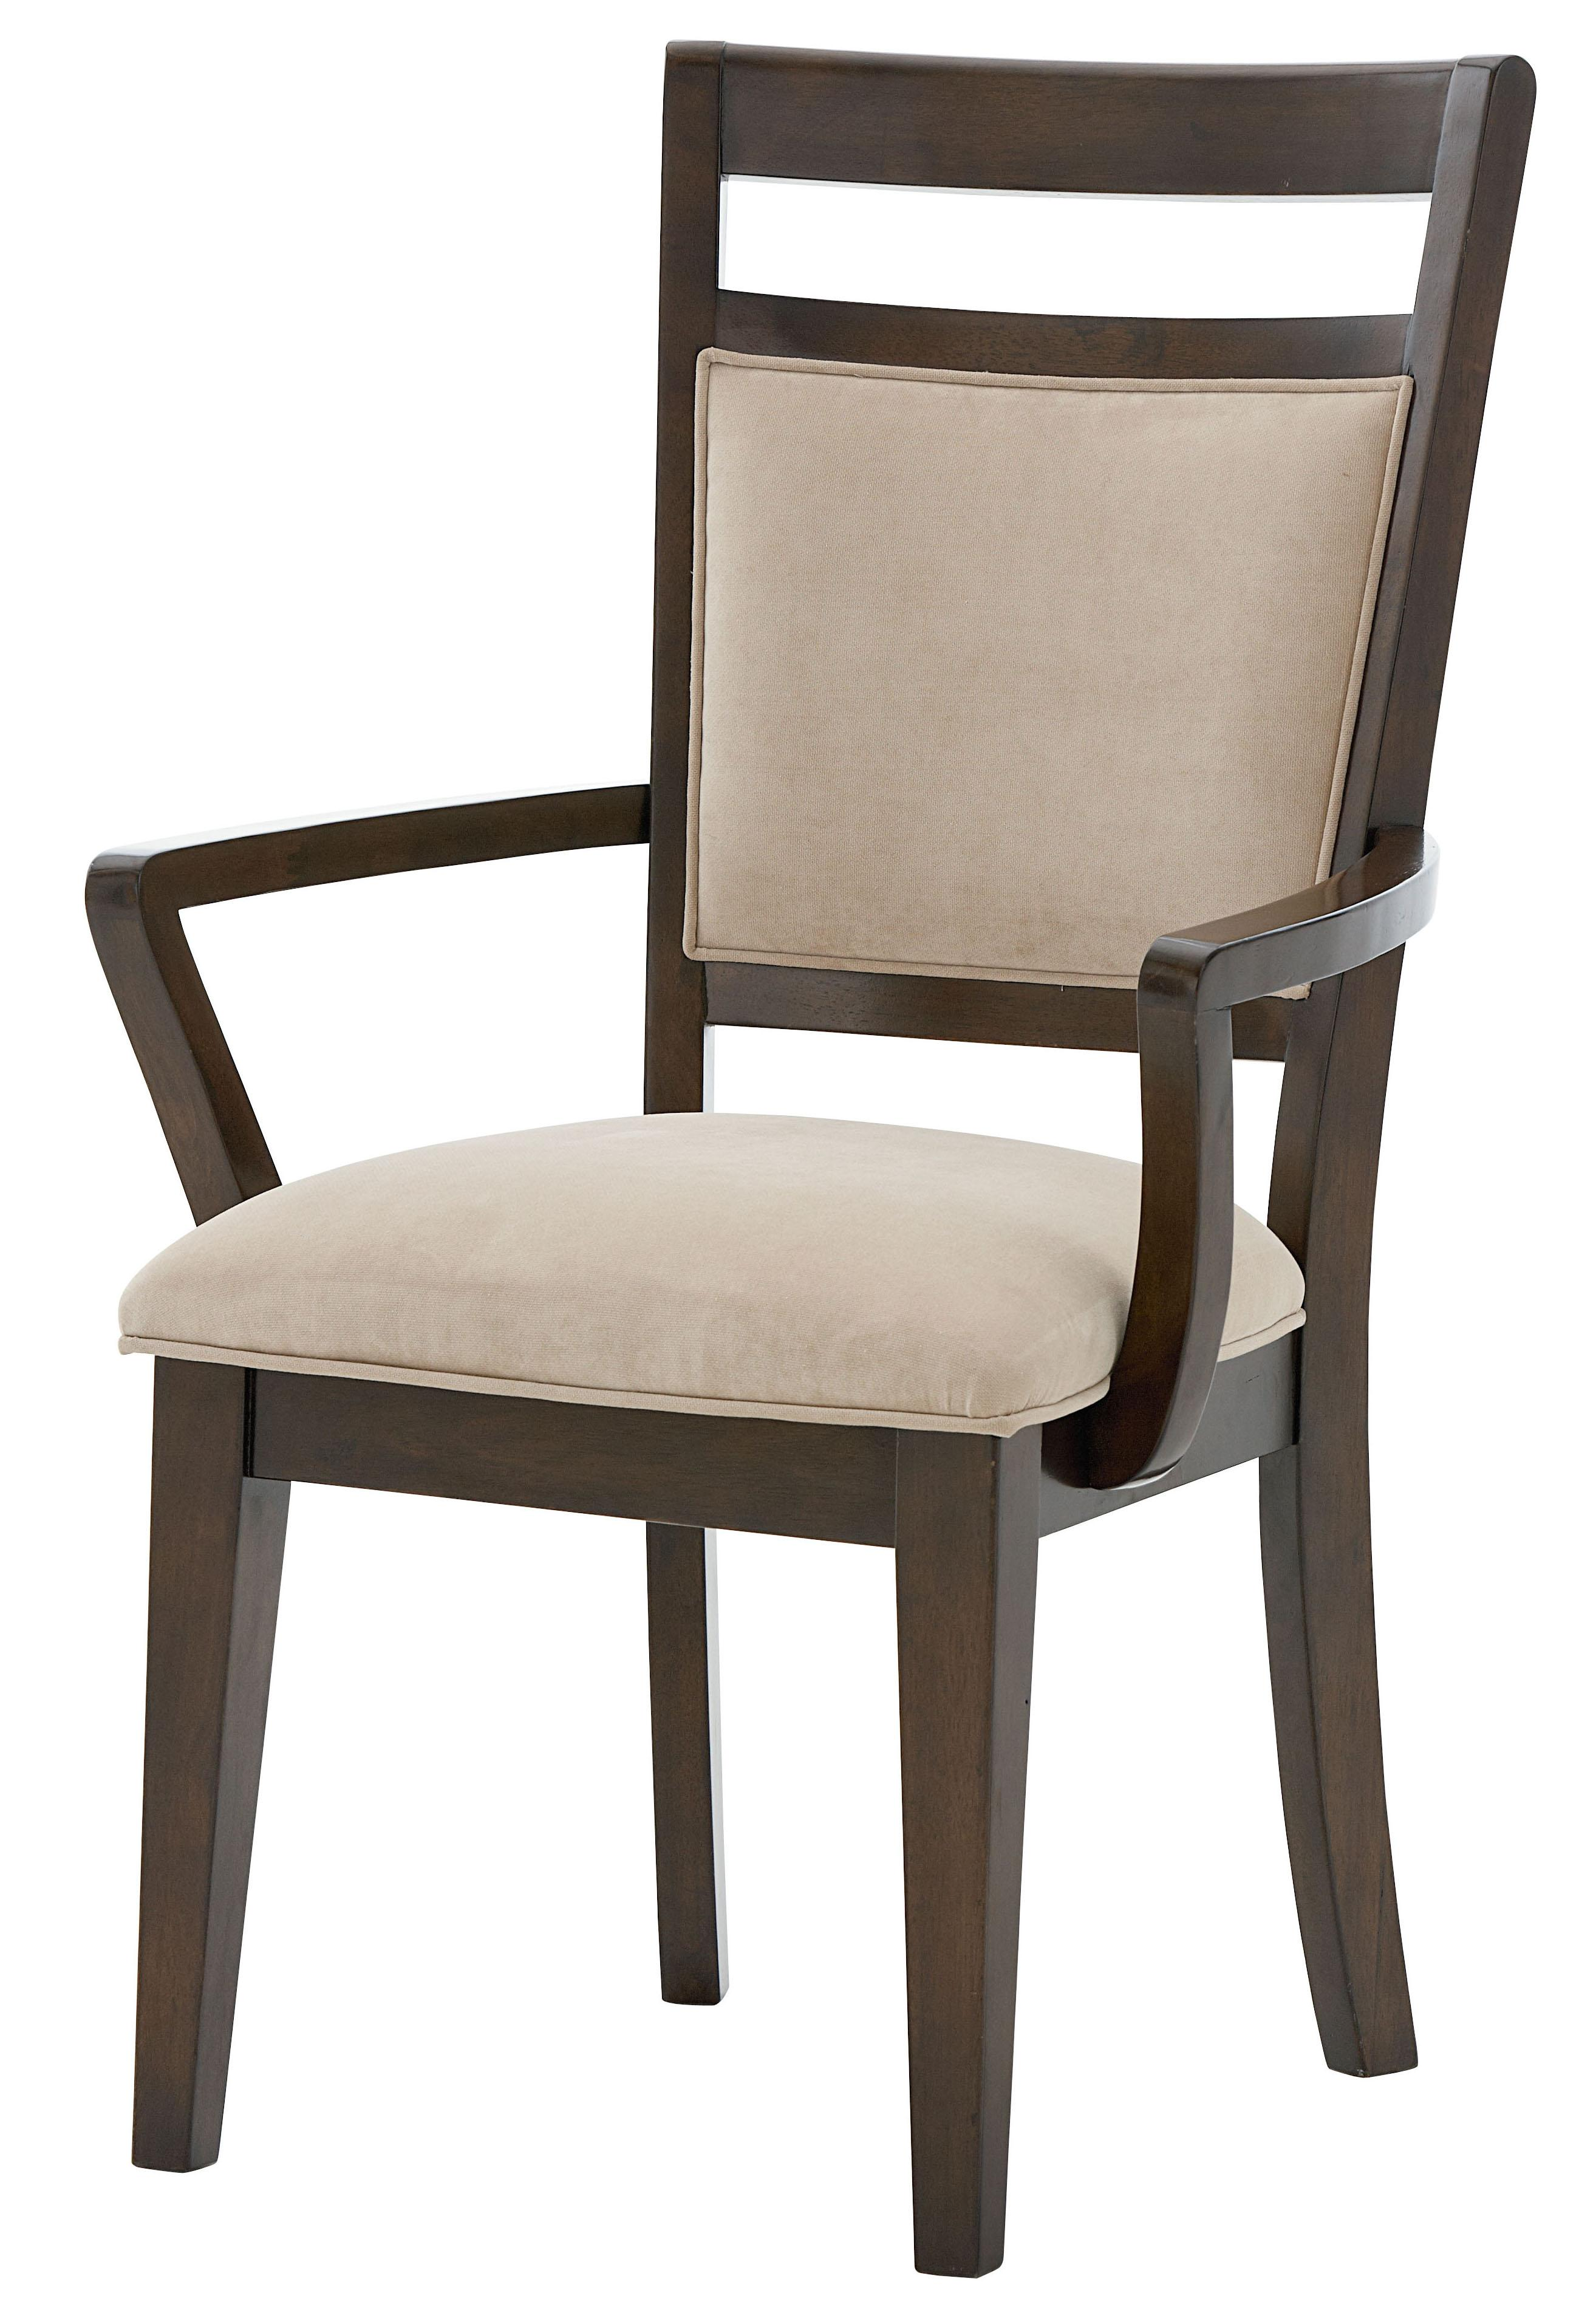 chair standards comfortable executive standard furniture avion arm with upholstered seat